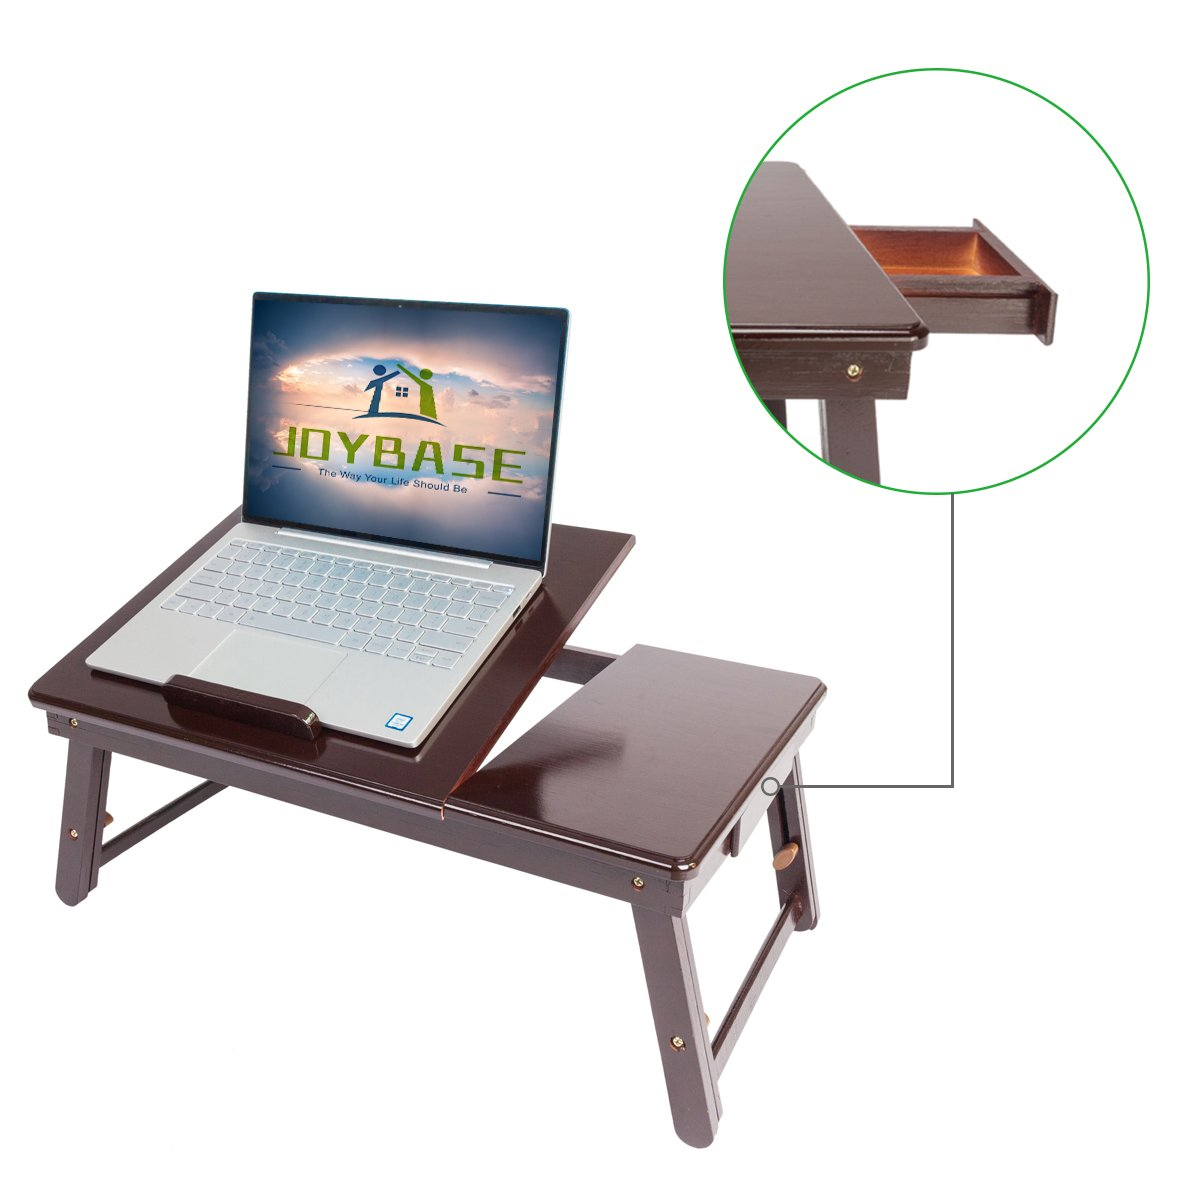 JOYBASE Adjustable Lapdesk Bed Tray Table with Tilting Top Storage Drawer, Portable Foldable Laptop Desk for Breakfast Reading Writing Eating Drawing, Bamboo (Coffee)